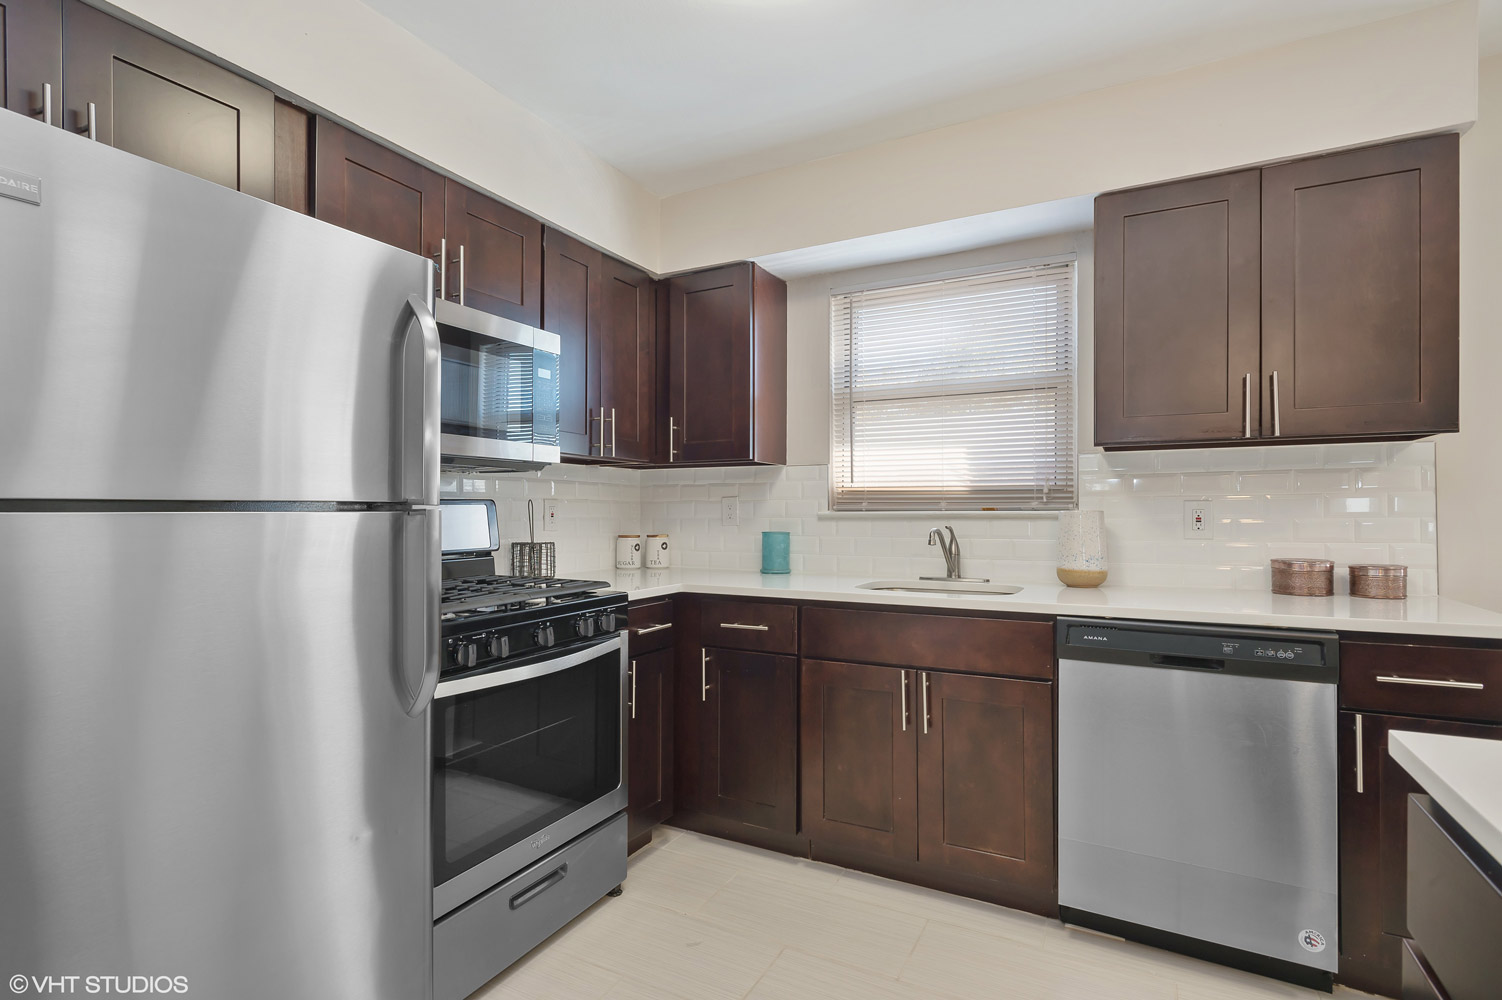 Kitchen Cabinets at Grandview Gardens Apartments in Edison, New Jersey